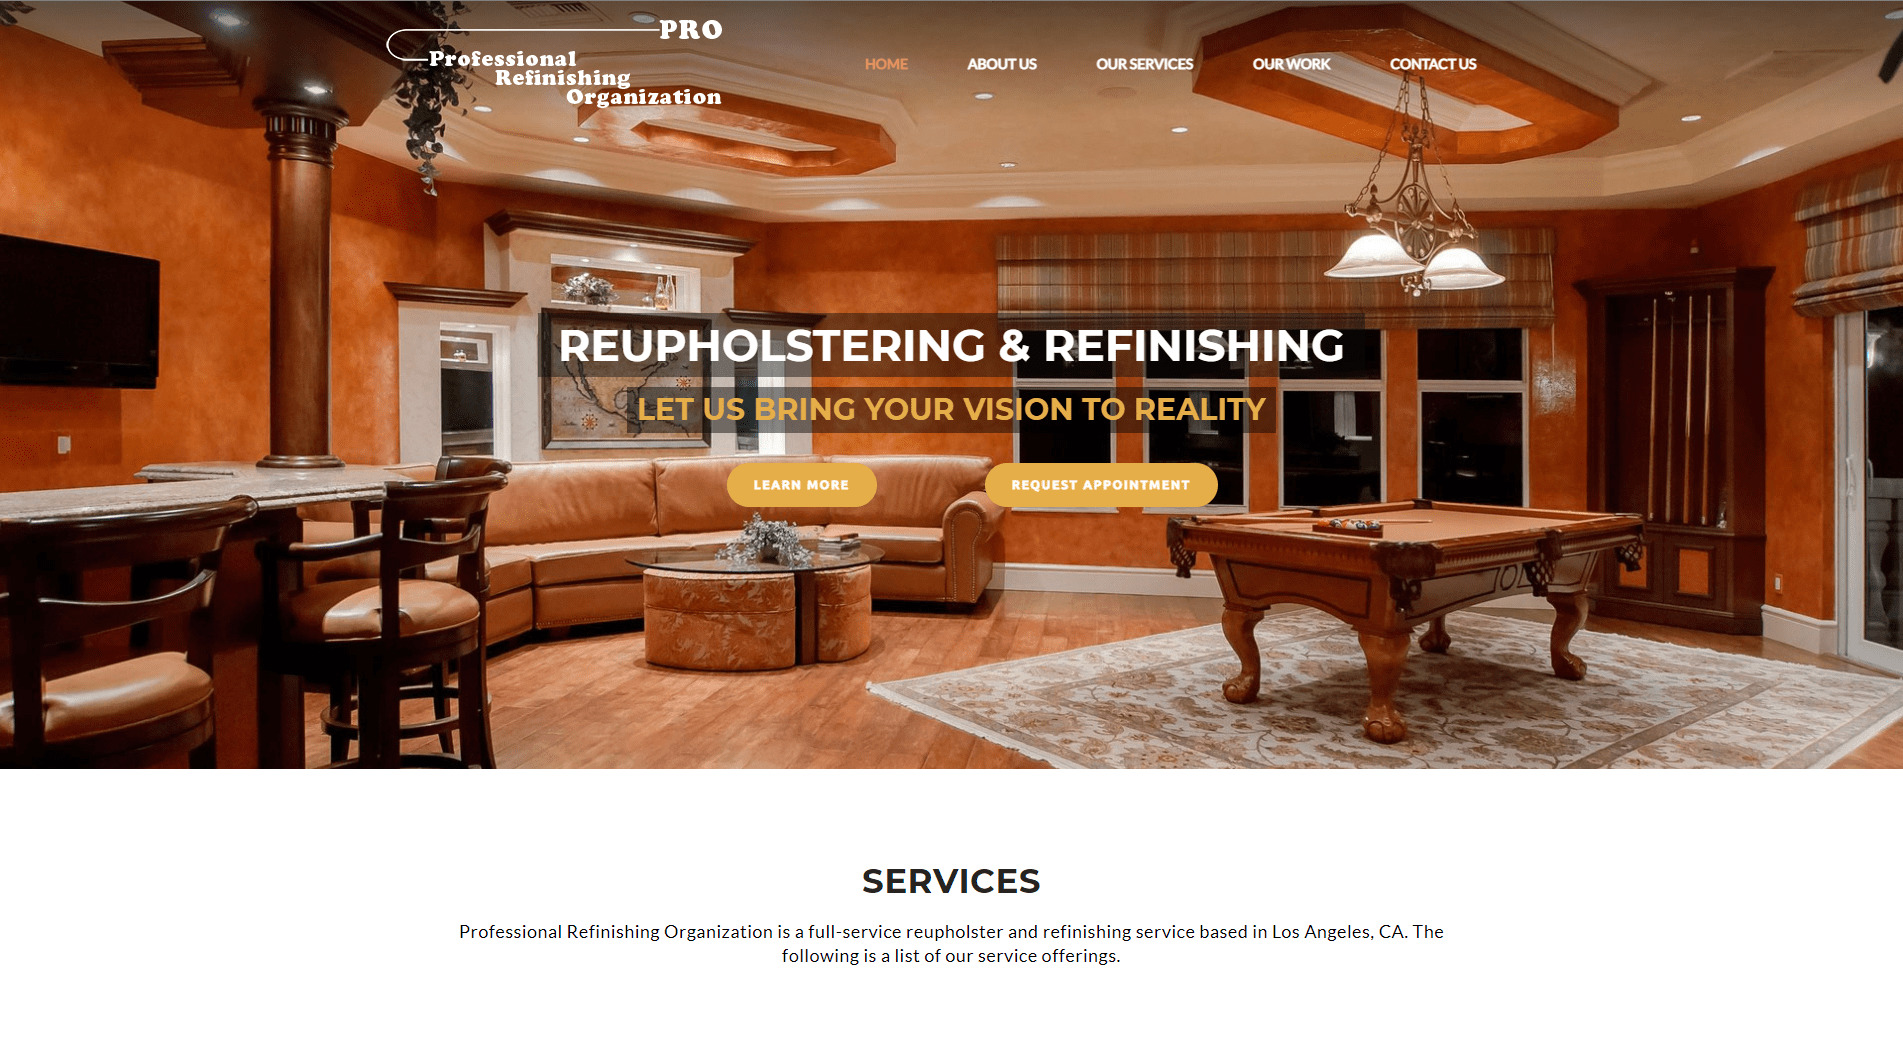 Professional-Refinishing-Organization-–-A-full-service-reupholster-and-refinishing-service-based-in-Los-Angeles-CA